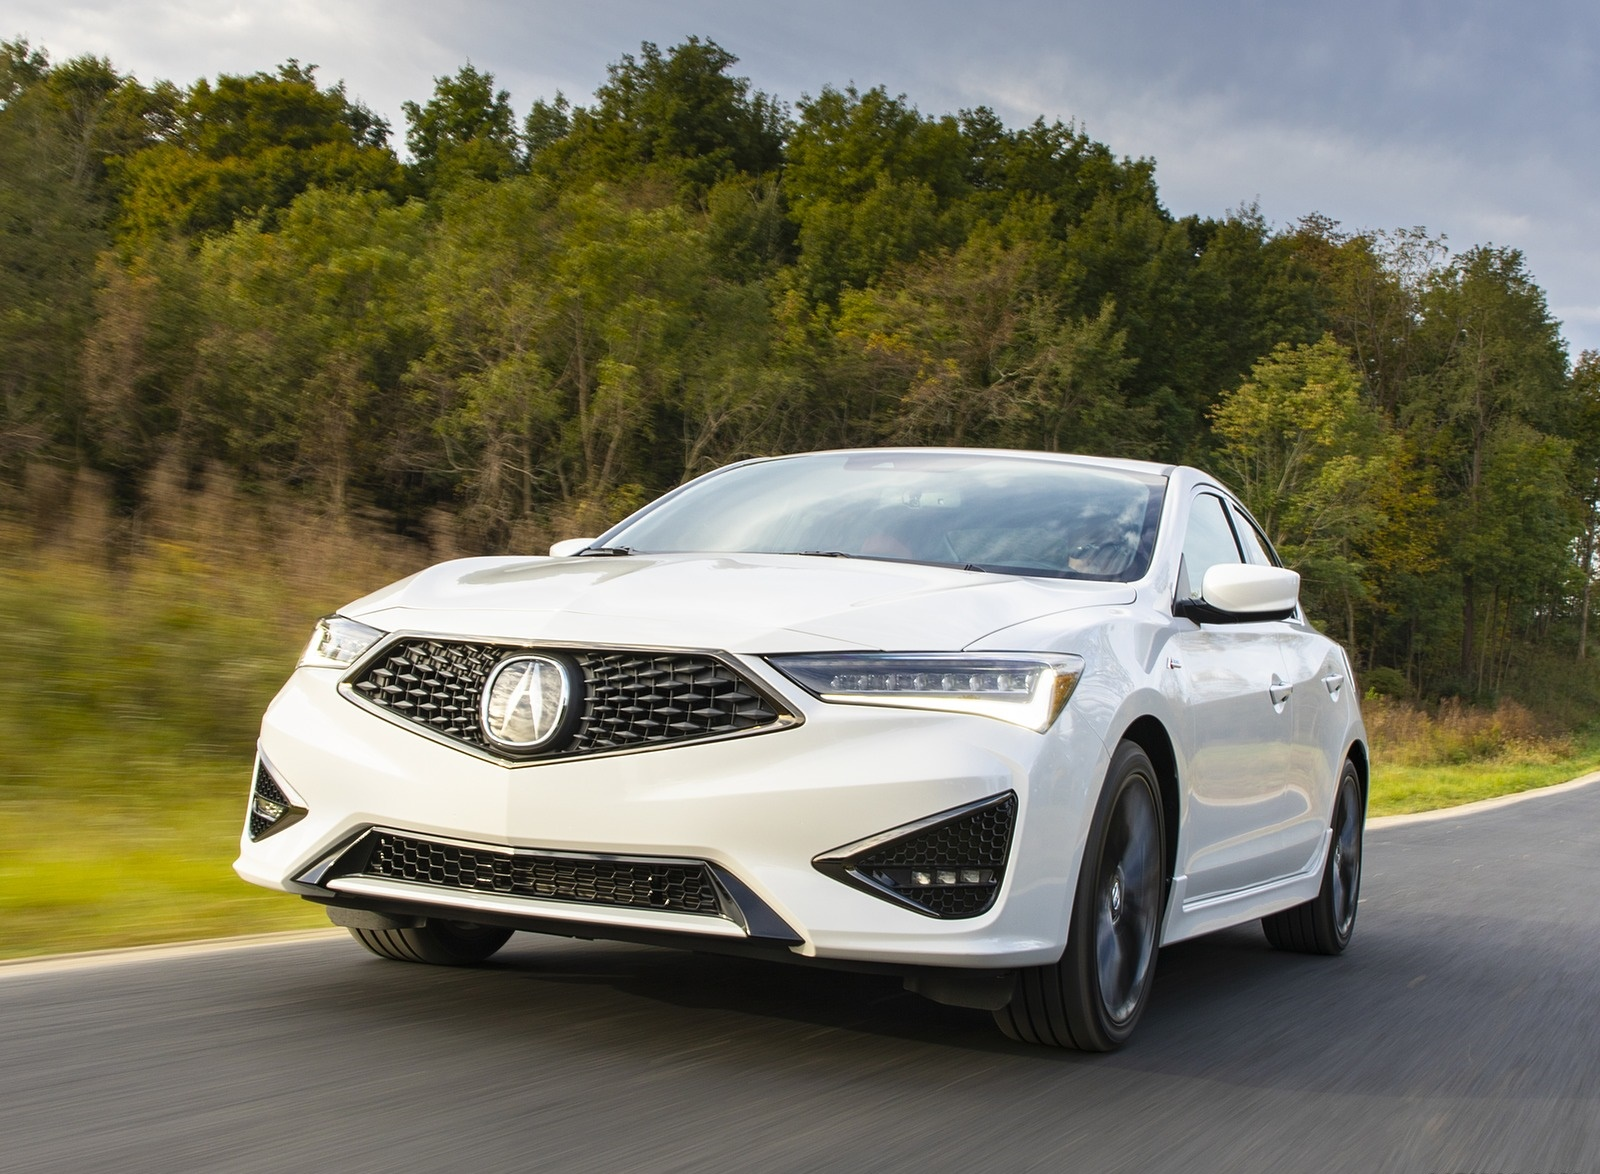 2020 Acura ILX A-Spec Front Wallpapers (7)